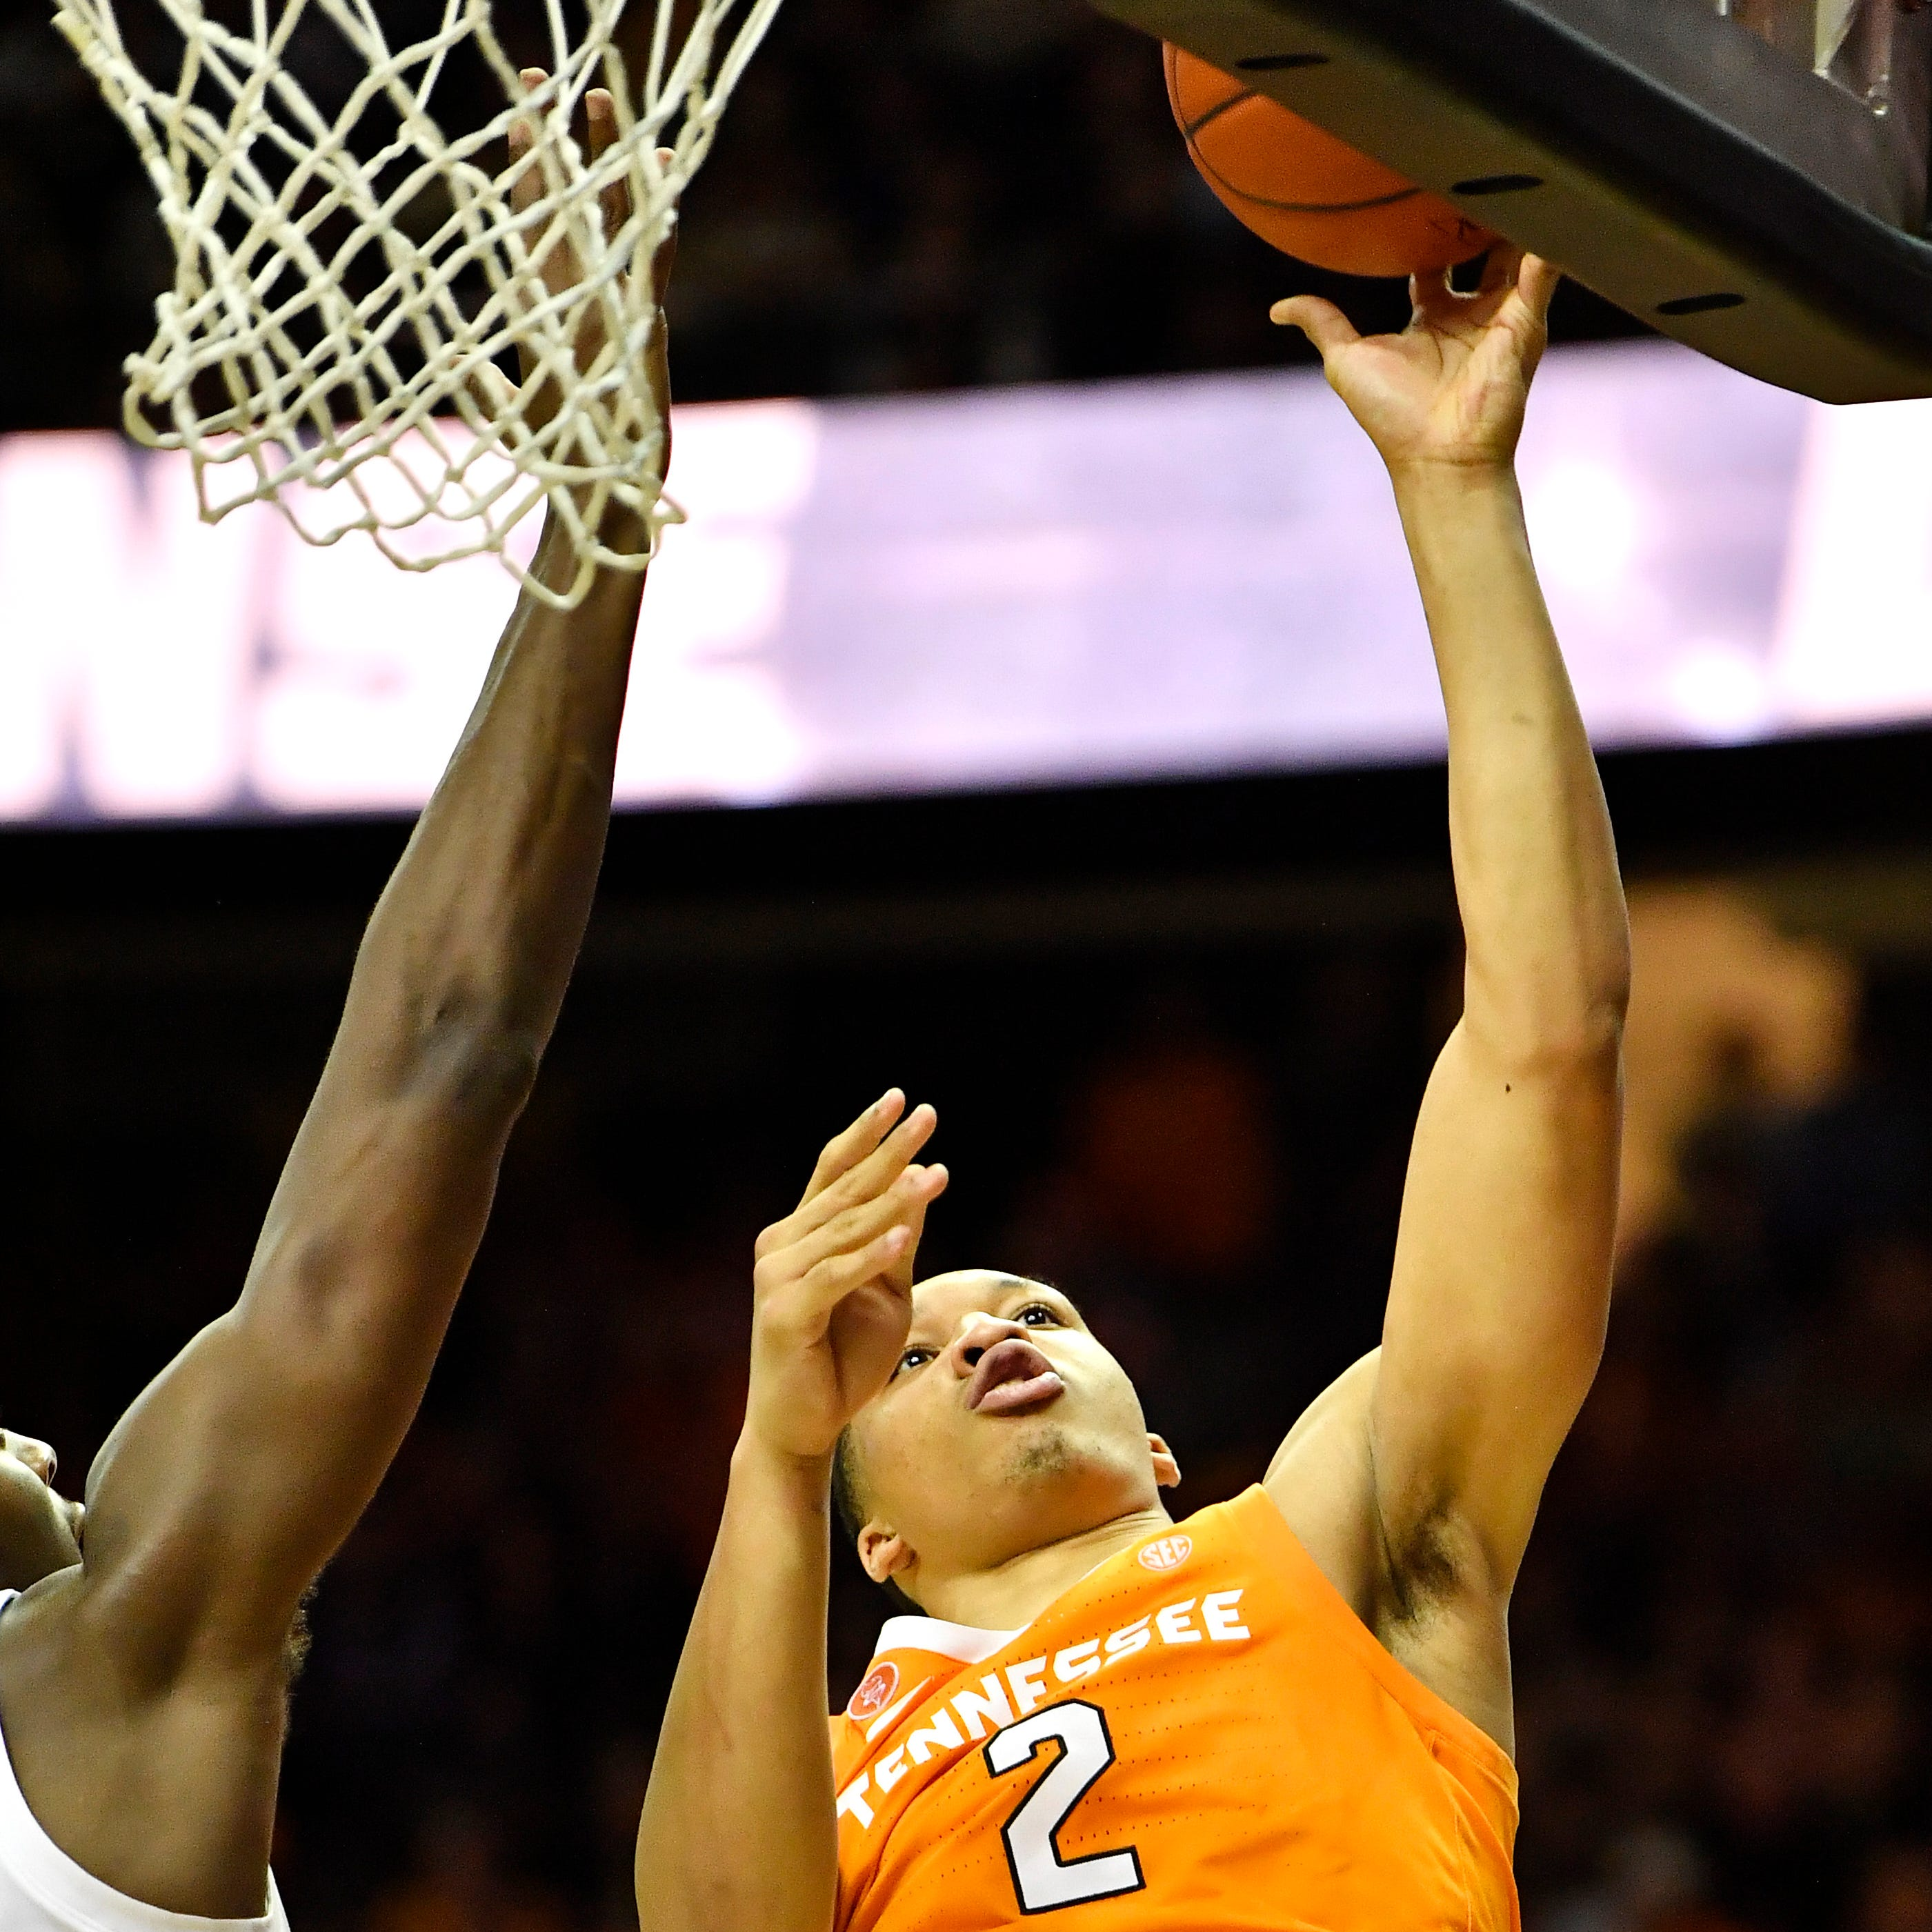 Grant Williams' epic performance leads No. 1 UT Vols basketball to OT win at Vanderbilt